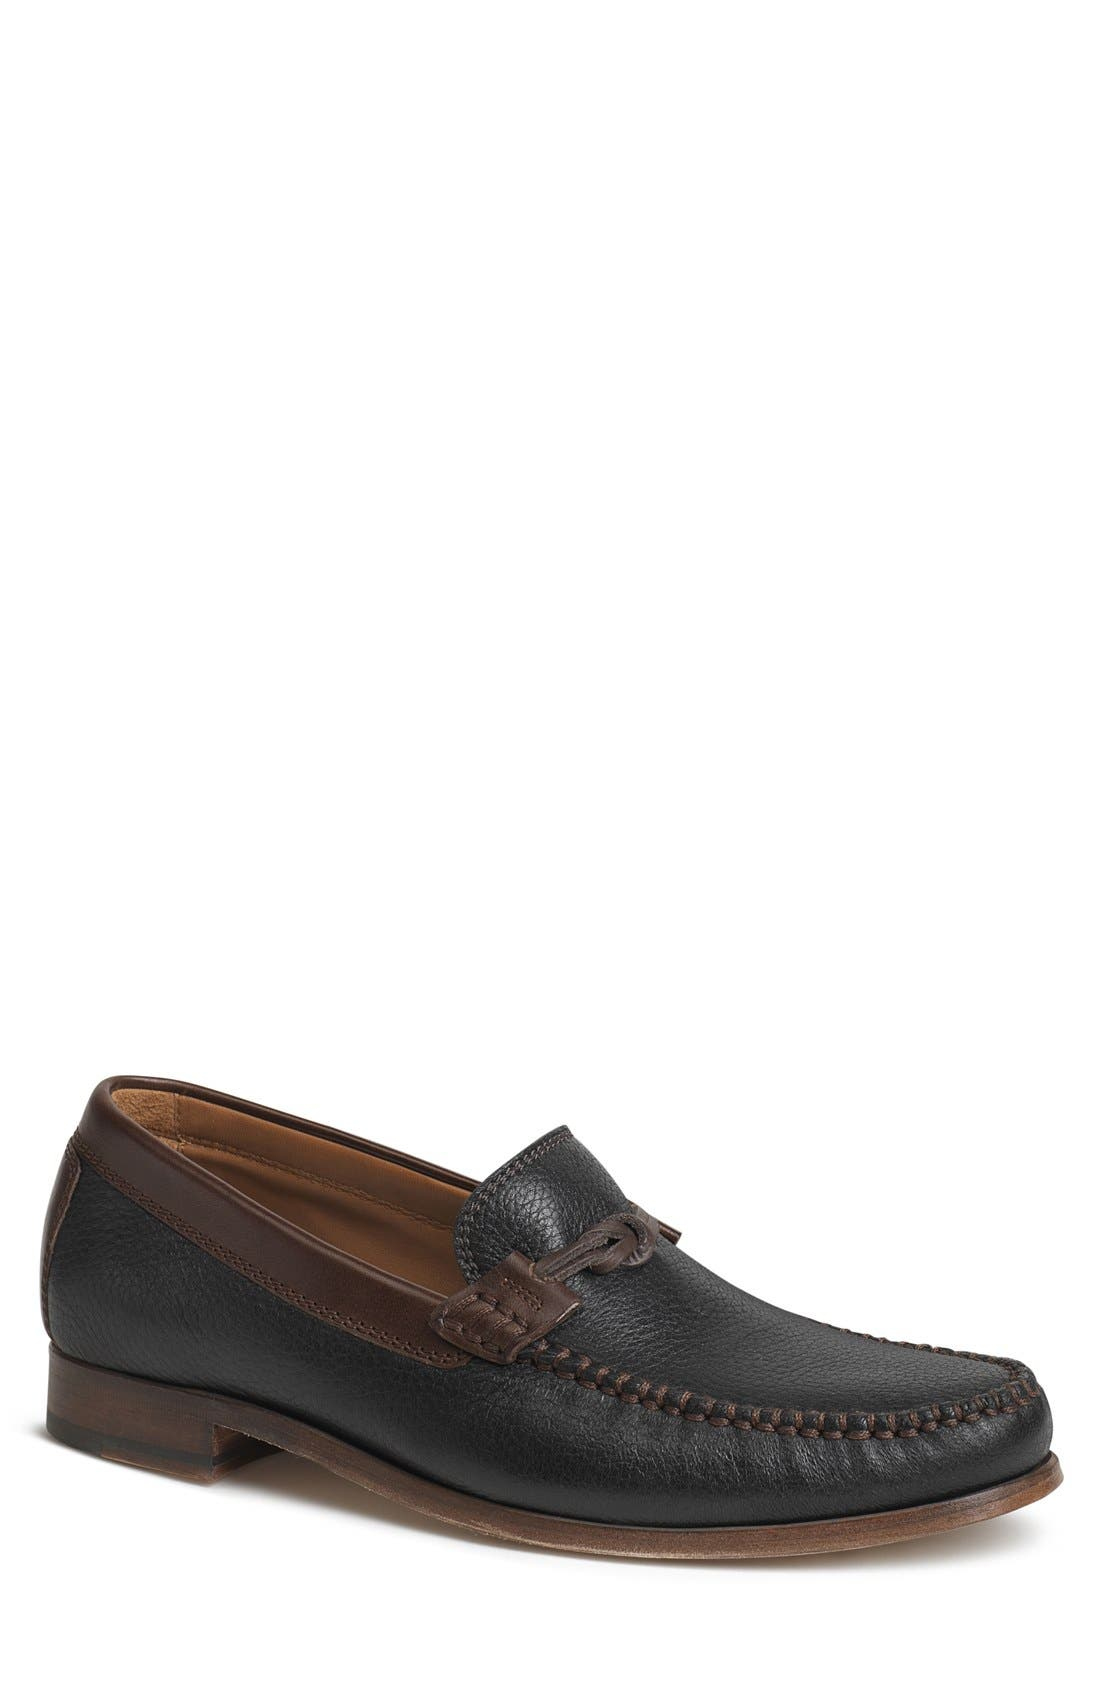 Main Image - Trask 'Sawyer' Loafer (Men)